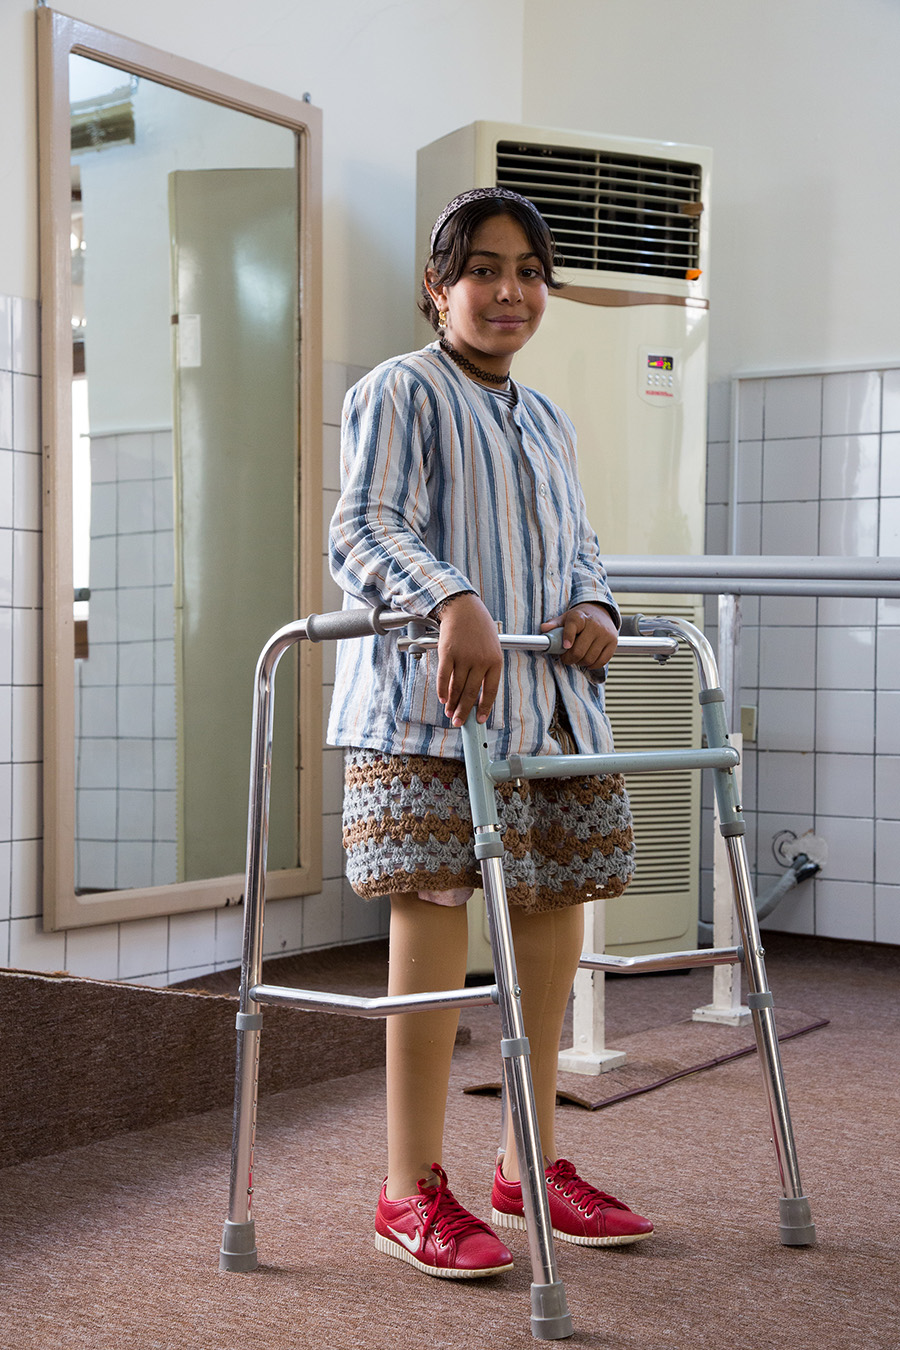 Ahlam at the Rehabilitation Centre in Sulaymaniyah Iraq